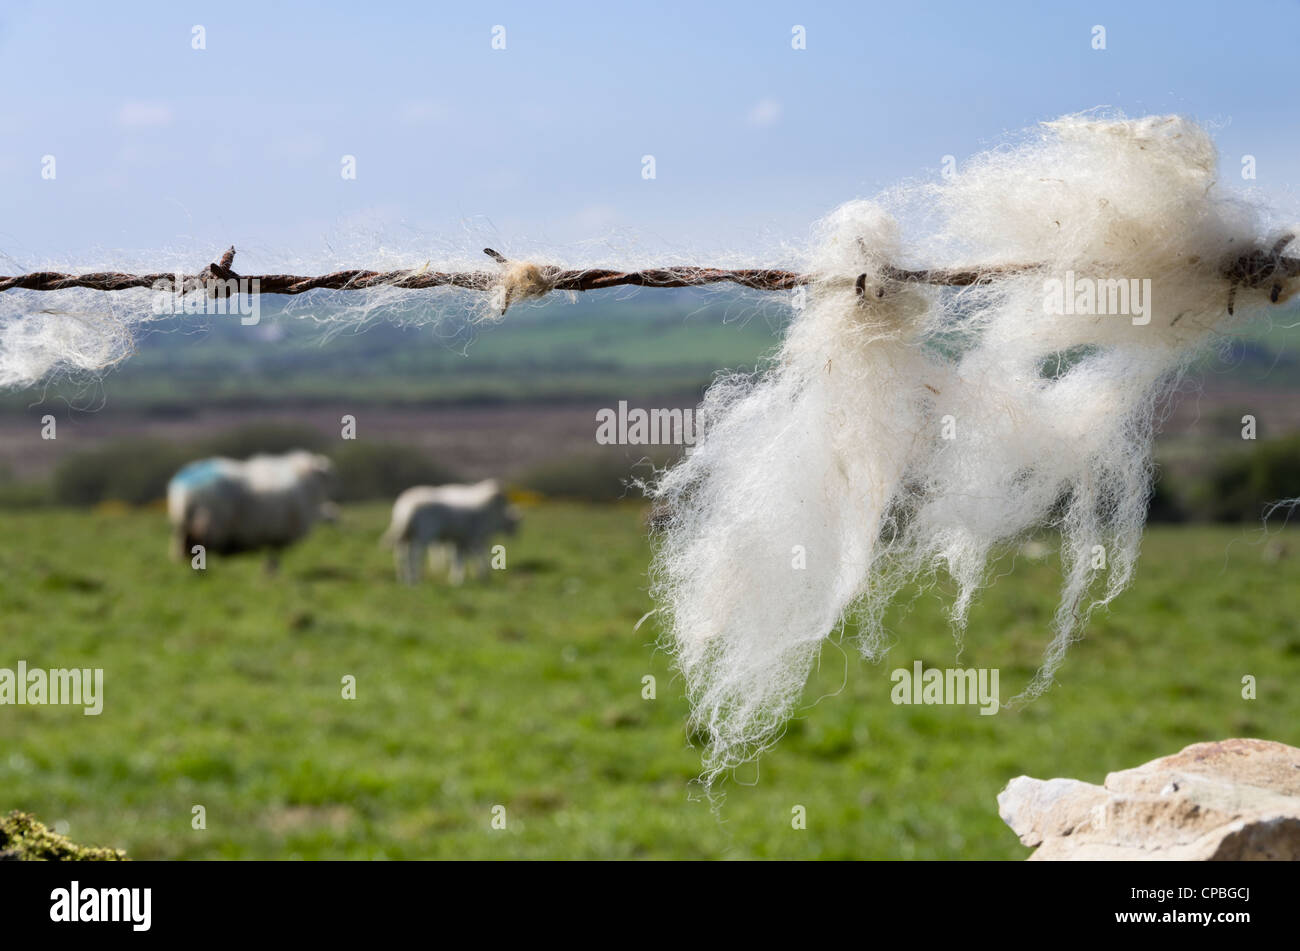 Sheep's wool caught on a barbed wire fence with sheep in the field beyond. UK, Britain - Stock Image